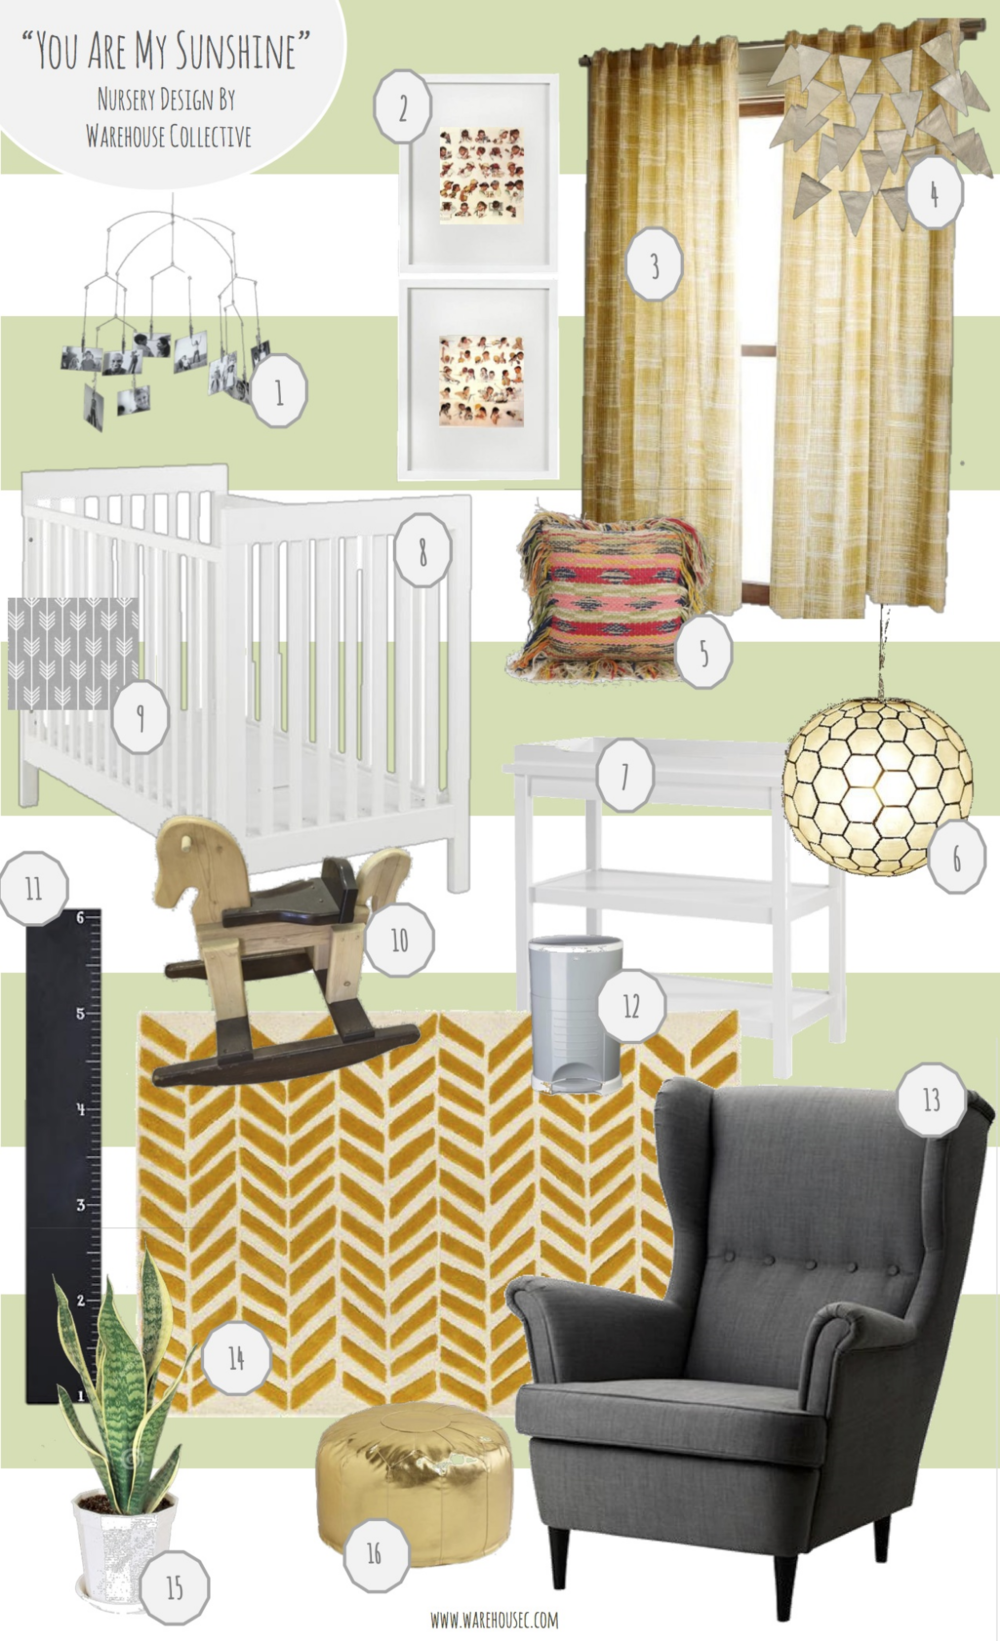 """The inspiration behind """"You Are My Sunshine"""" is a Neutral nursery filled with color that functions beautifully. Our client painted two walls and the ceiling with bold stripes inBehr Celery Bunch. With that as our base, we added1.All Modern Photo Mobile $192. Client's Vintage Norman Rockwell """"Life of a Boy/Girl"""" 3.West Elm Cotton Canvas Etched Grid Curtain $394.Land of Nod Metallic Pendant Gardland $305.Urban Outfitters Rag Fringe Pillow $696.West Elm Capiz Orb Pendant $1597.Land of Nod Change It Up Changing Table $3158.Land of Nod Elemental Crib $5999.Neon Earth Baby Fitted Crib Sheet $6510. Client's Vintage Wooden Rocking Horse 11.Land of Nod Inch by Inch Chalkboard Growth Chart $5912.Diaper Dekor Kolor Plus Pail $4613.Ikea Strandmon Wing Chair in Gray $279(DIY to Rocking Chair)14.Land of Nod Gold Bars Rug $39915.Ikea Potted Plant $1516.Land of Nod Faux Leather Seat $89"""